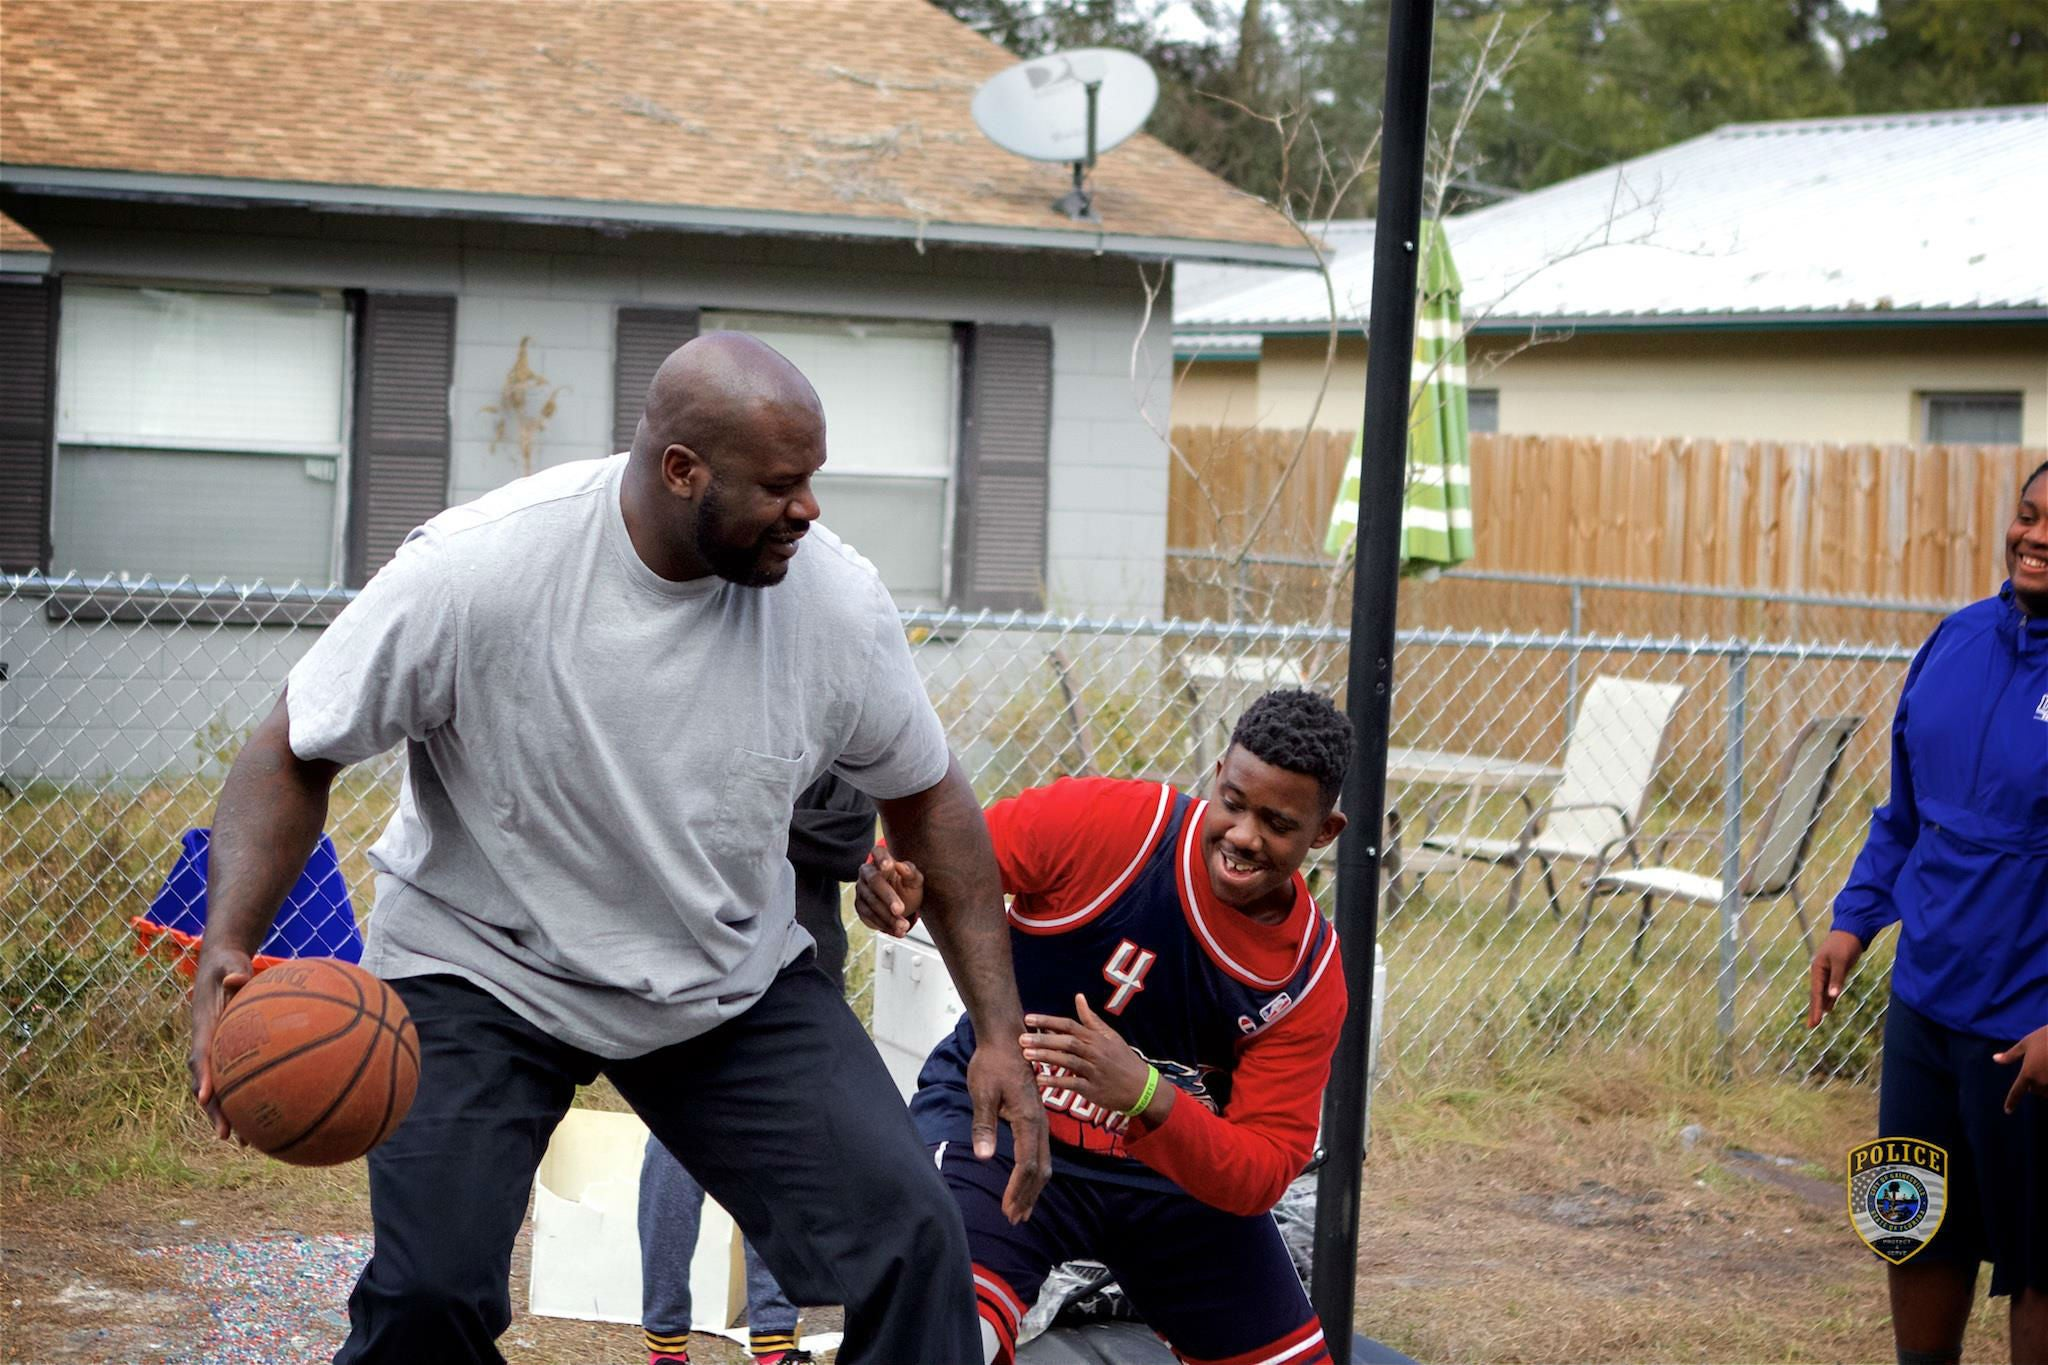 Shaquille O'neal Surprises Kids By Joining Pickup Basketball Game In  Florida  The Independent